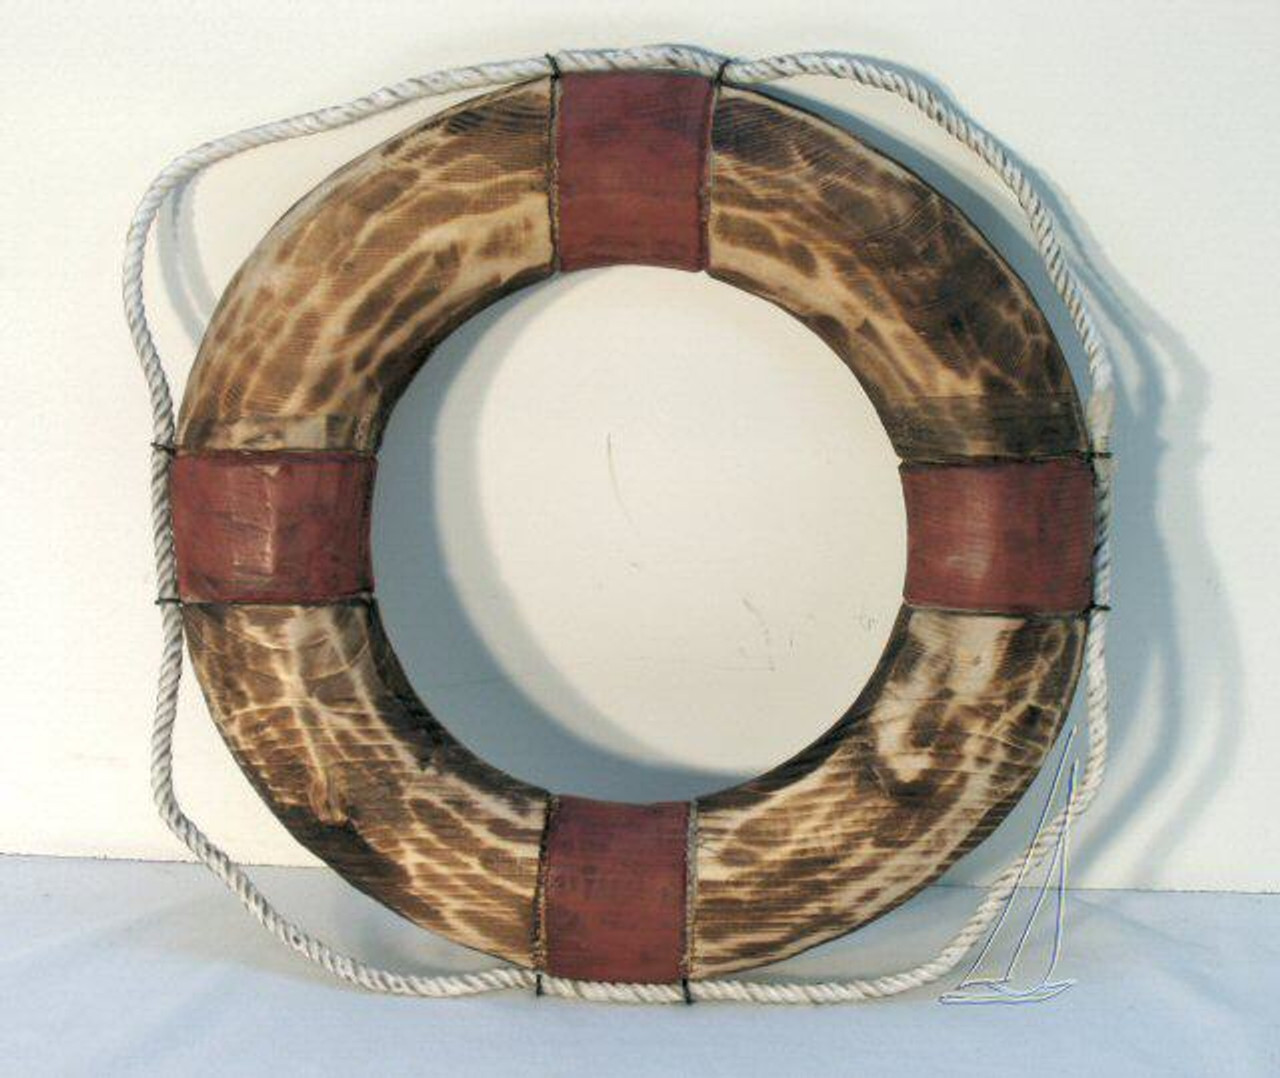 12 nautical antiqued wooden